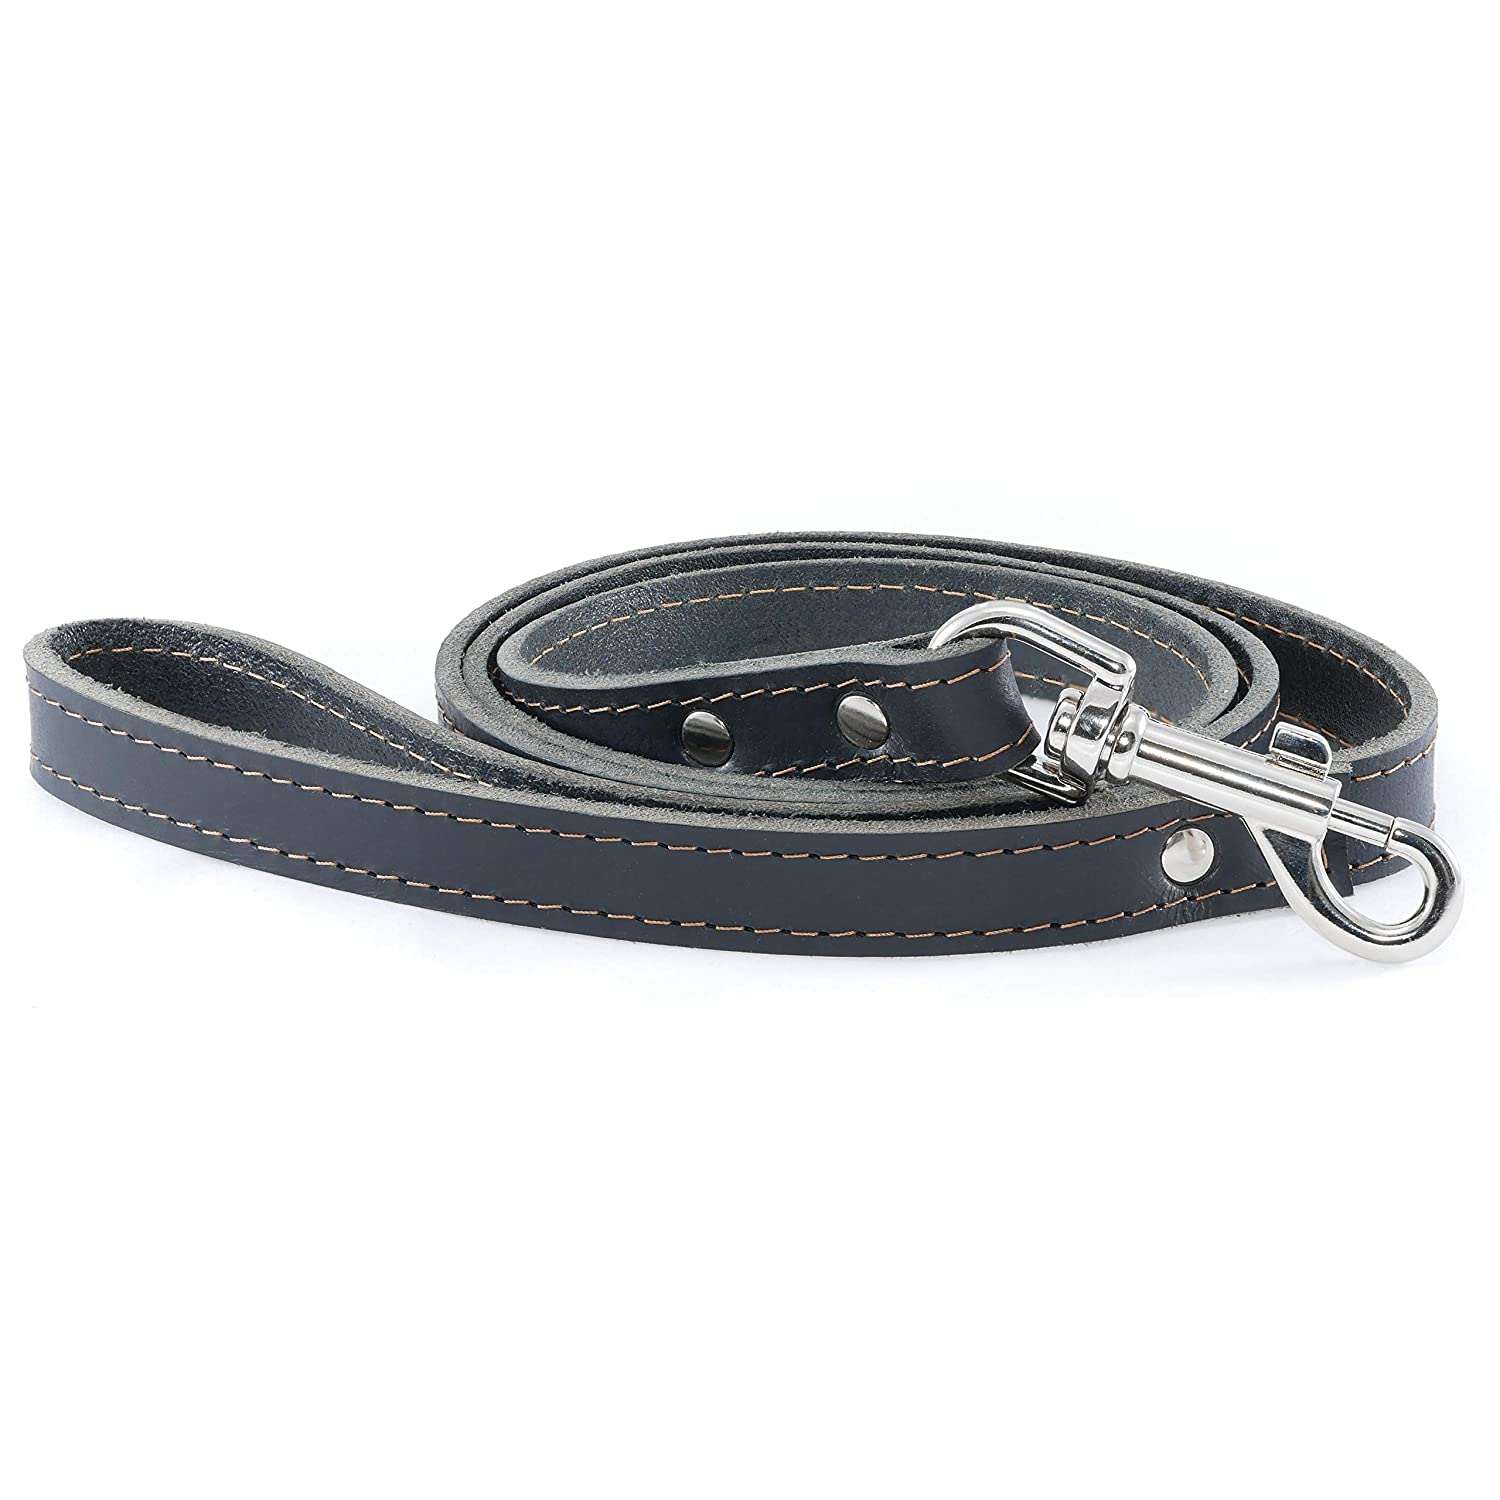 Black Zianis Braided Leather Dog Training Leash 4.2 Ft Long 0.75  Dog Walking Leash Best for Medium Large Dogs Quality Leather Dog Lead Puppy Trainer Leash with Traffic Handle Made in Europe (Black)